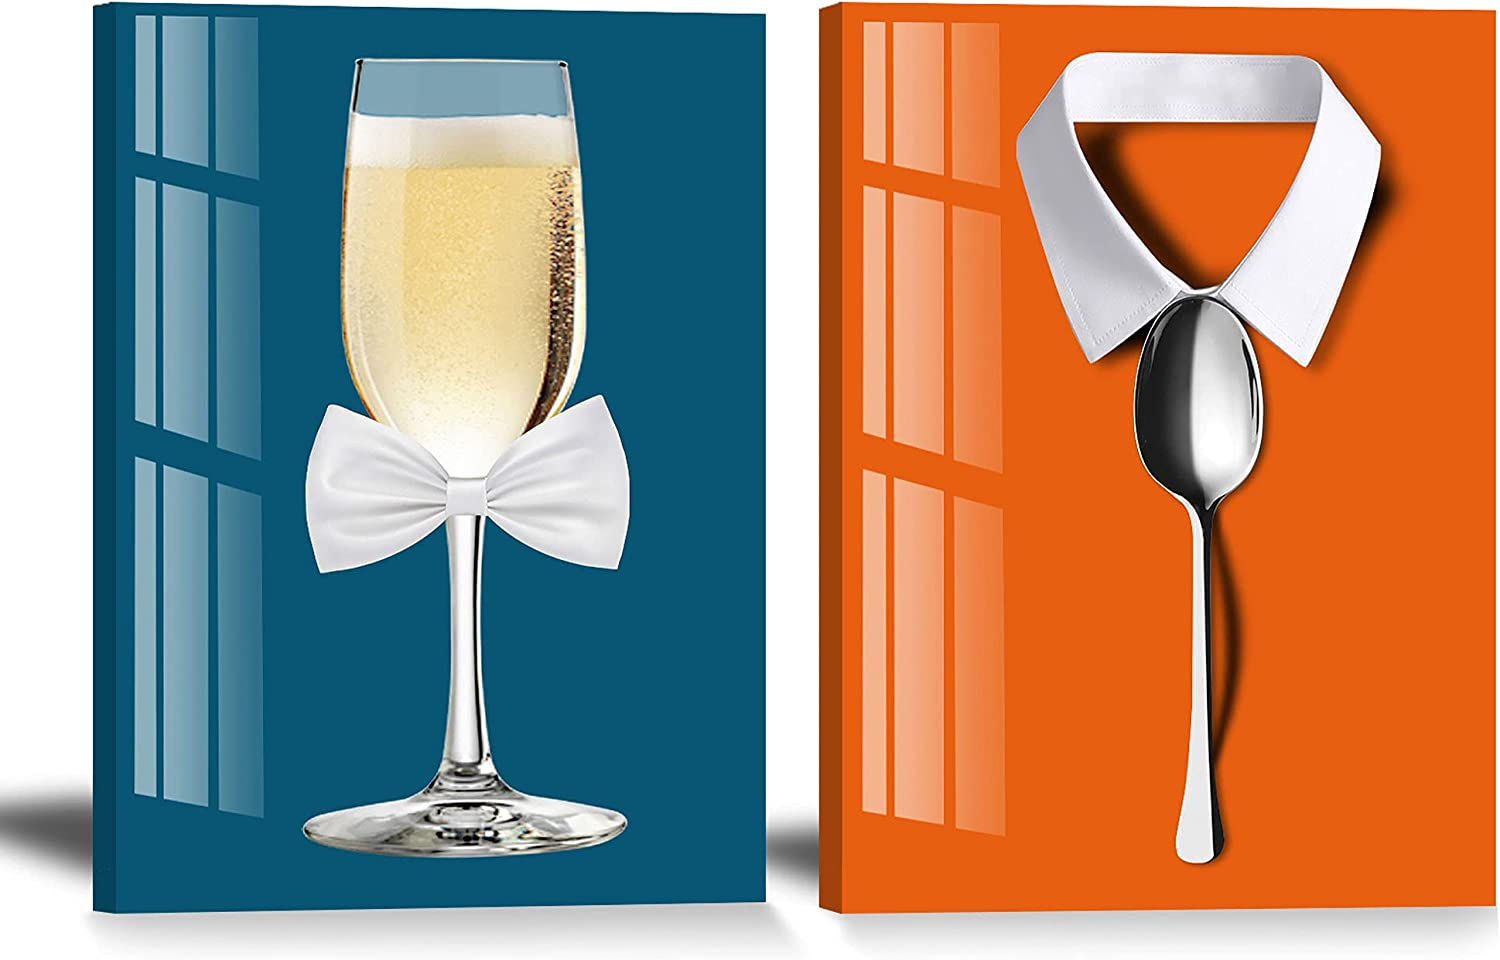 Cyan and Orange Canvas Dining Room Wall Decor 12x16inch 2 Panels Beer in Goblet with Bow Tie Wall Art and White Collar Shirt with Spoon as Buttons Kitchen Wall Pictures Modern Theme Prints Painting